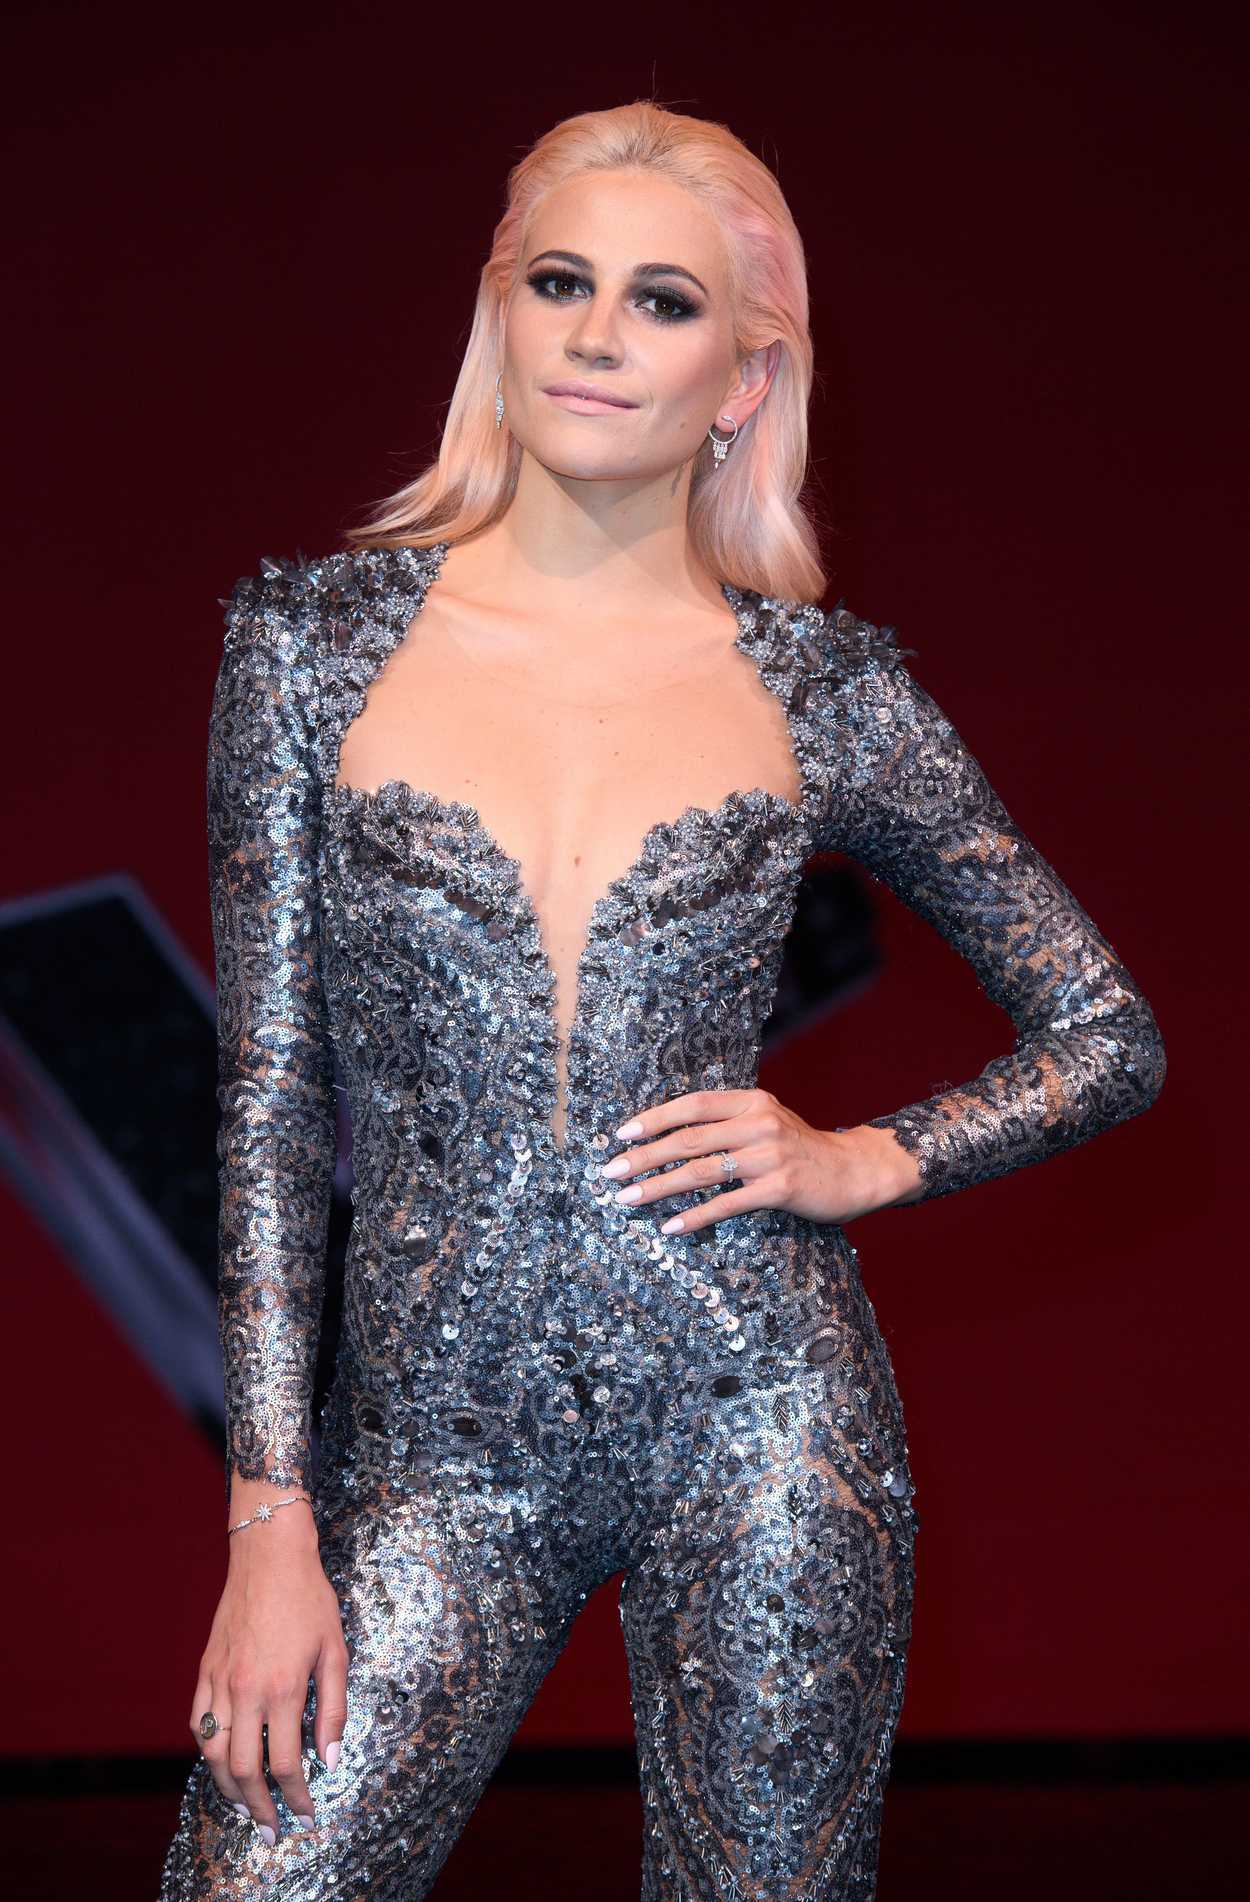 Pixie Lott at The Voice Kids Final Photocall in London 07